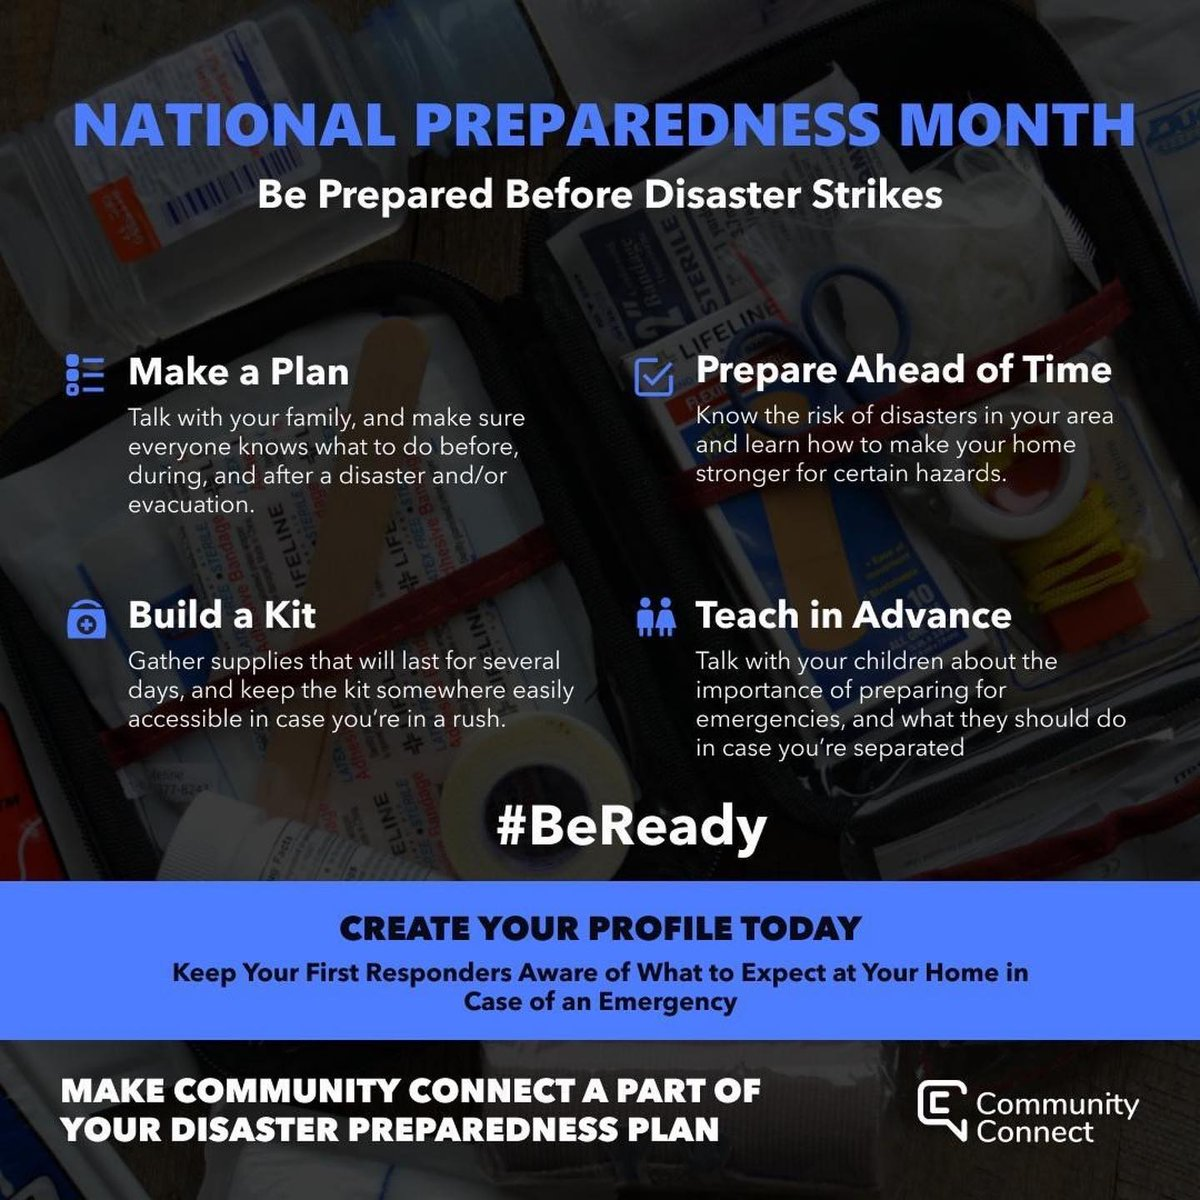 *Shared from FMFD* September is National Preparedness Month! Follow these tips from FEMA and make Community Connect a part of your disaster preparedness plan. Visit   to create your profile today.